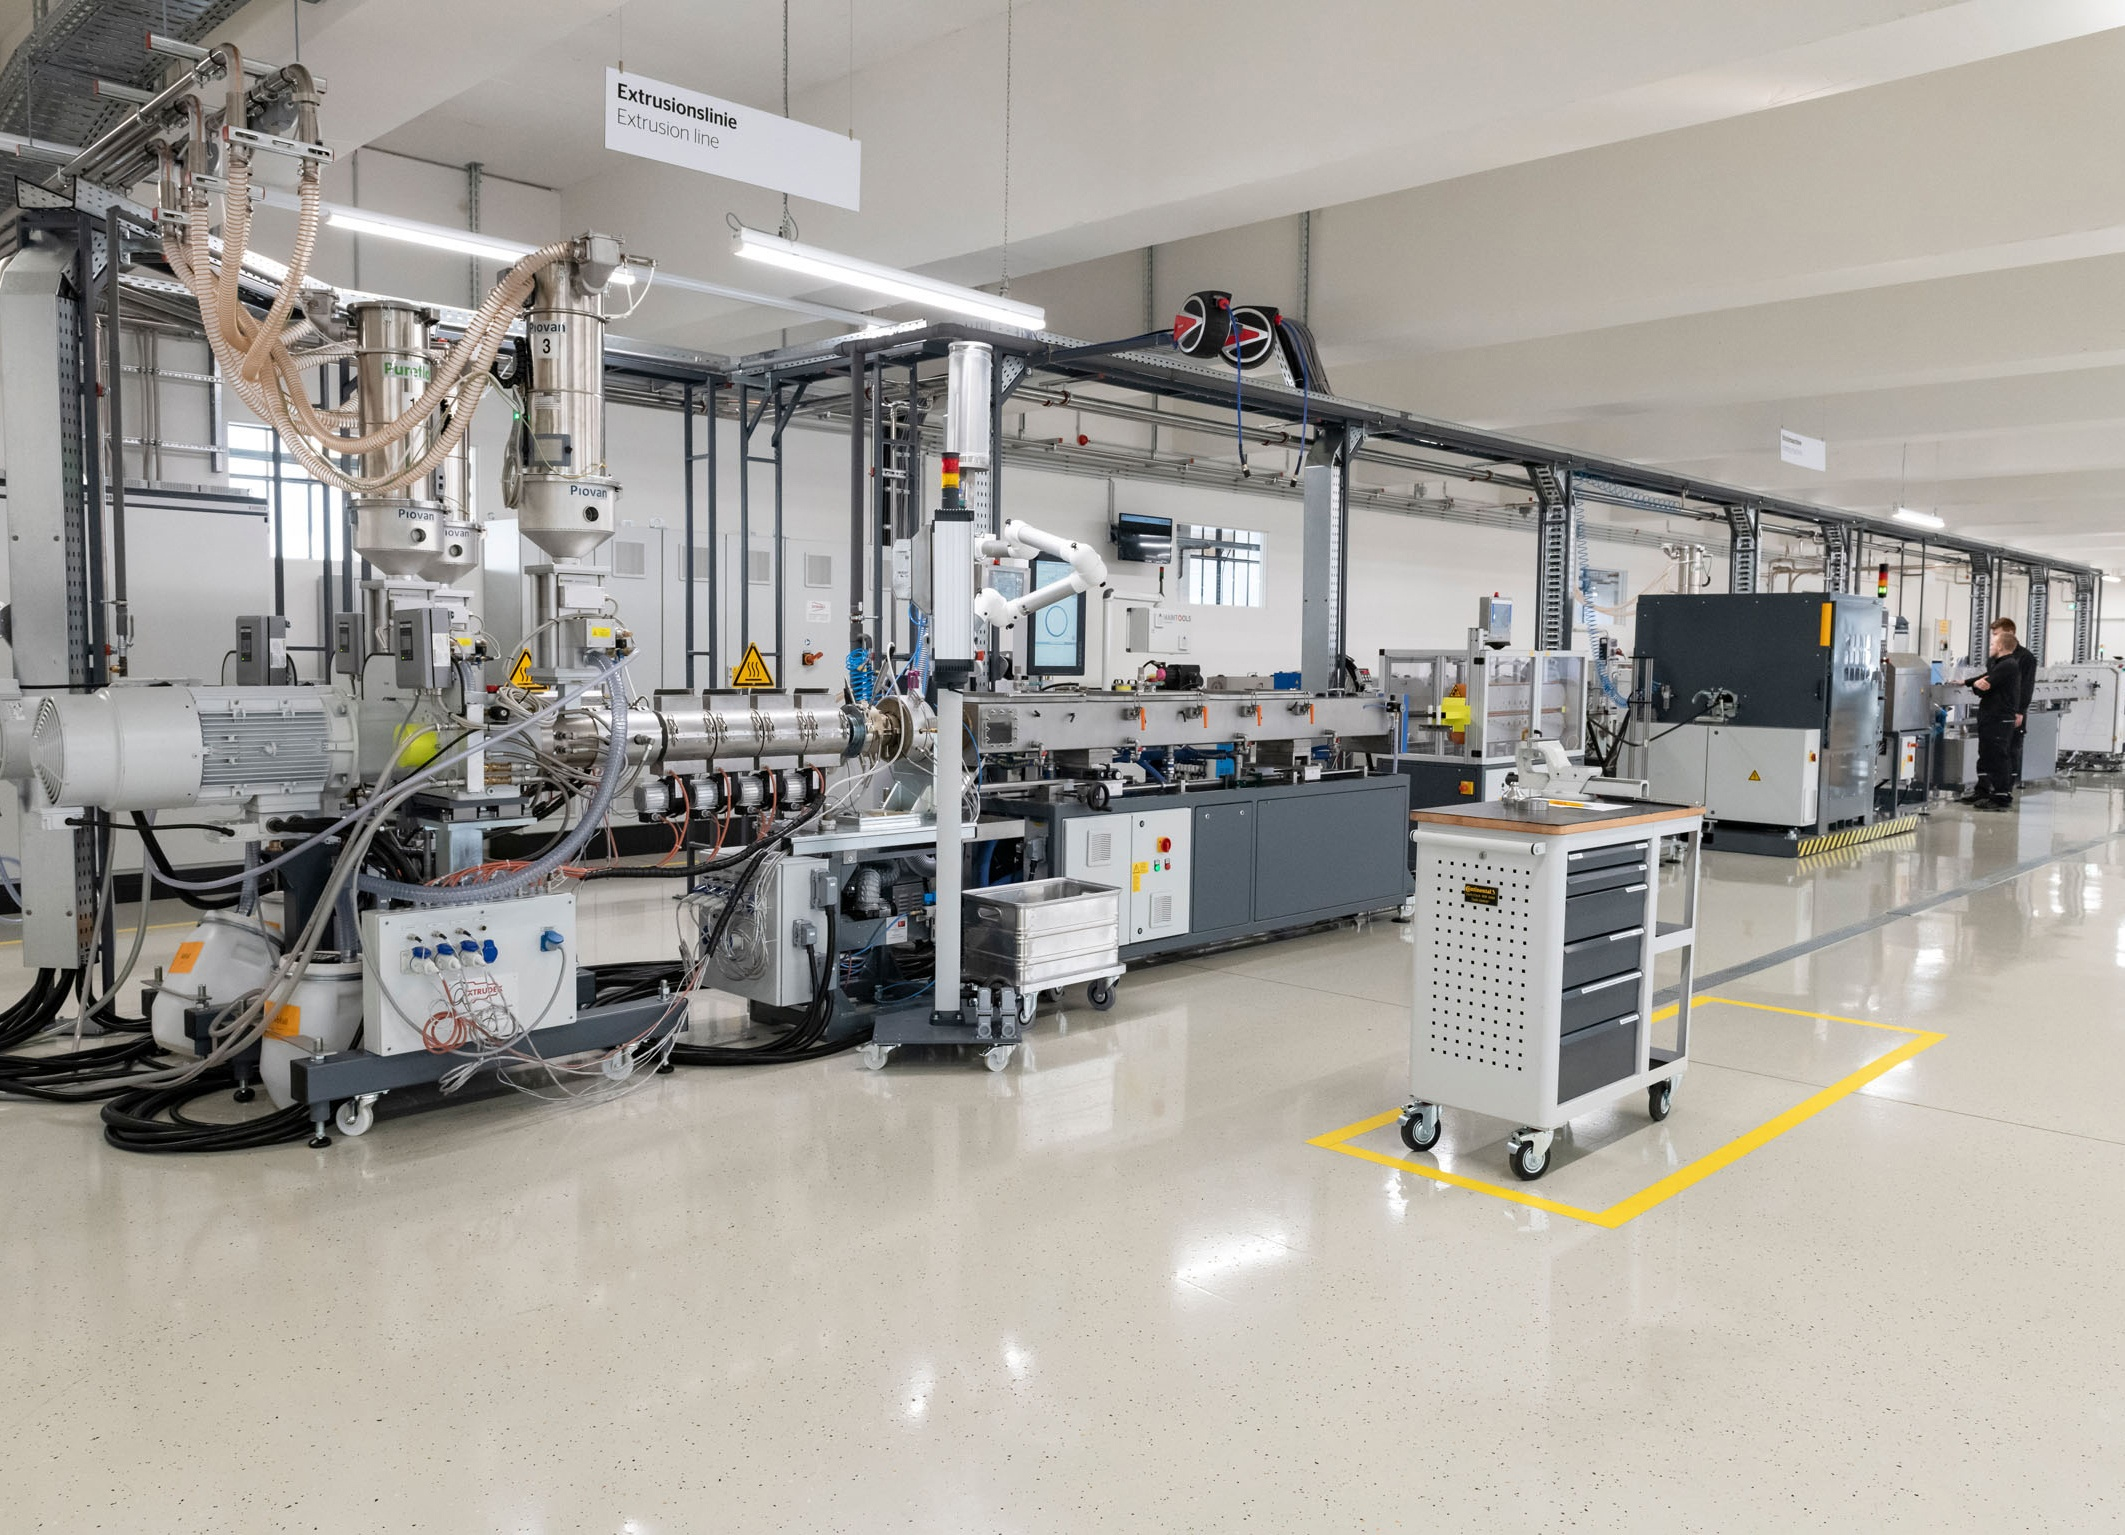 Continental Expands its Plastics Expertise for Thermo Management at Specialist Tech Centers